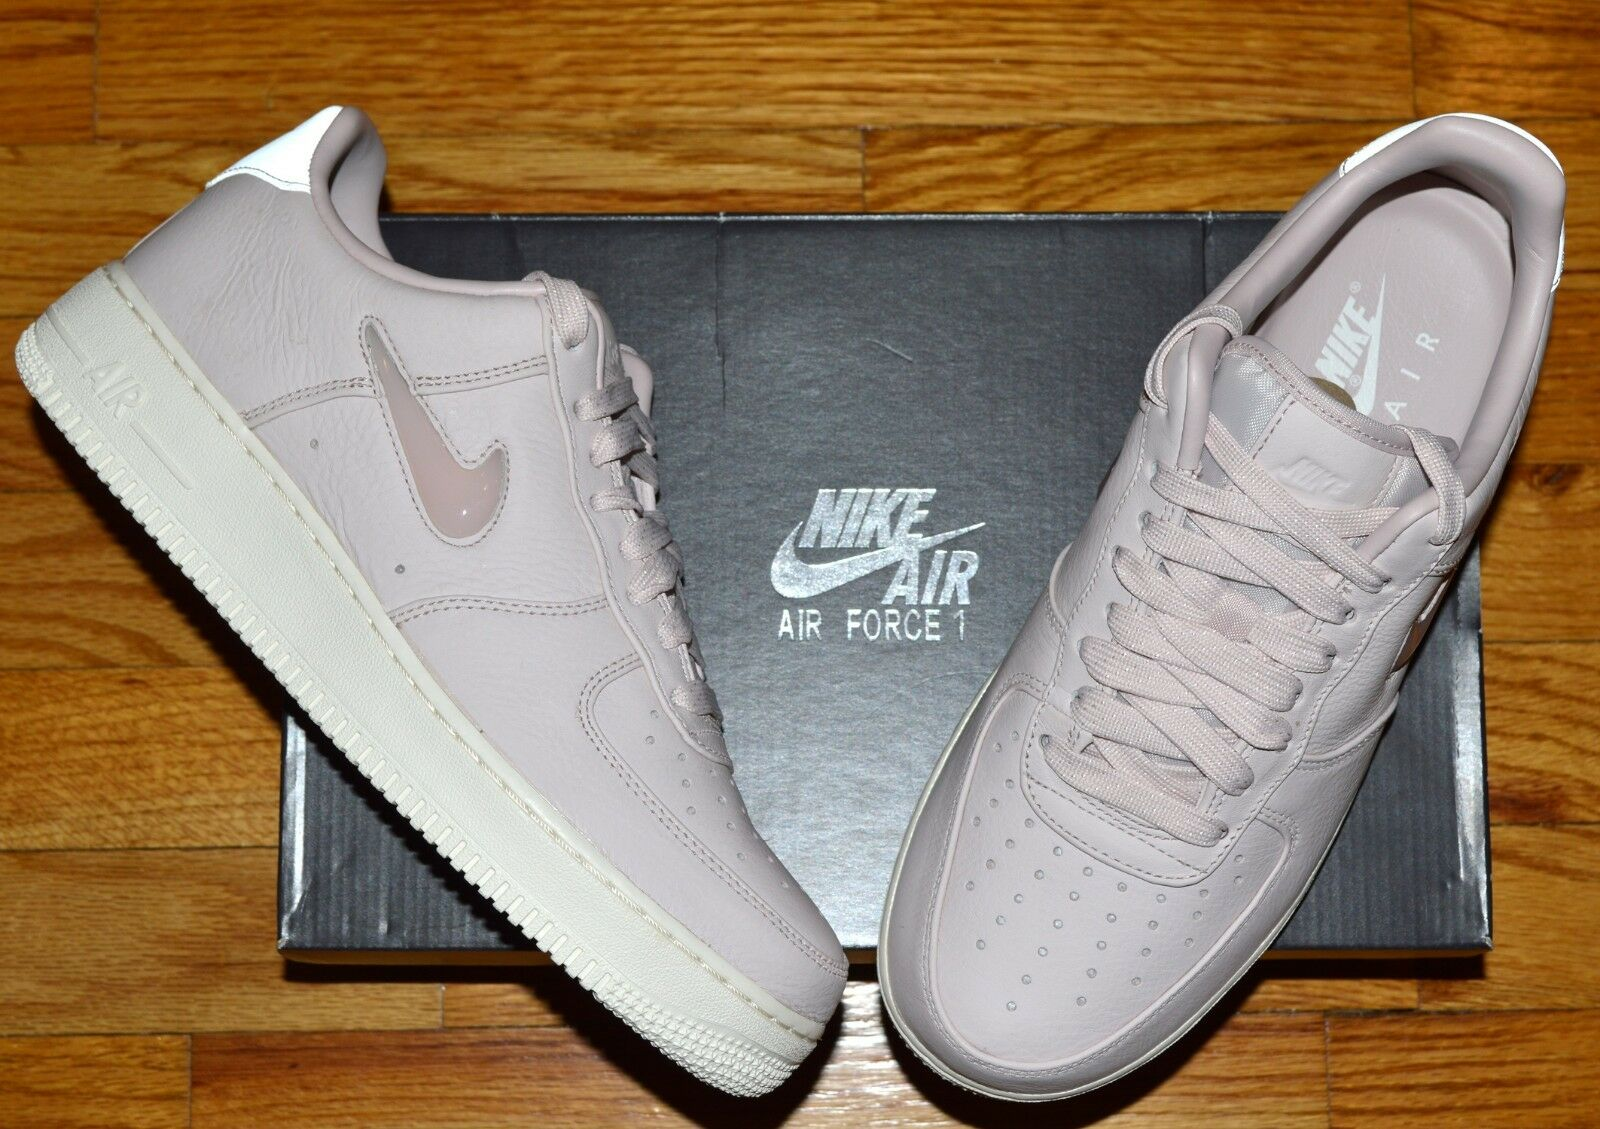 NIB Nike Air Force 1 Retro PRM Leather Sneakers  US 8 Light Pink